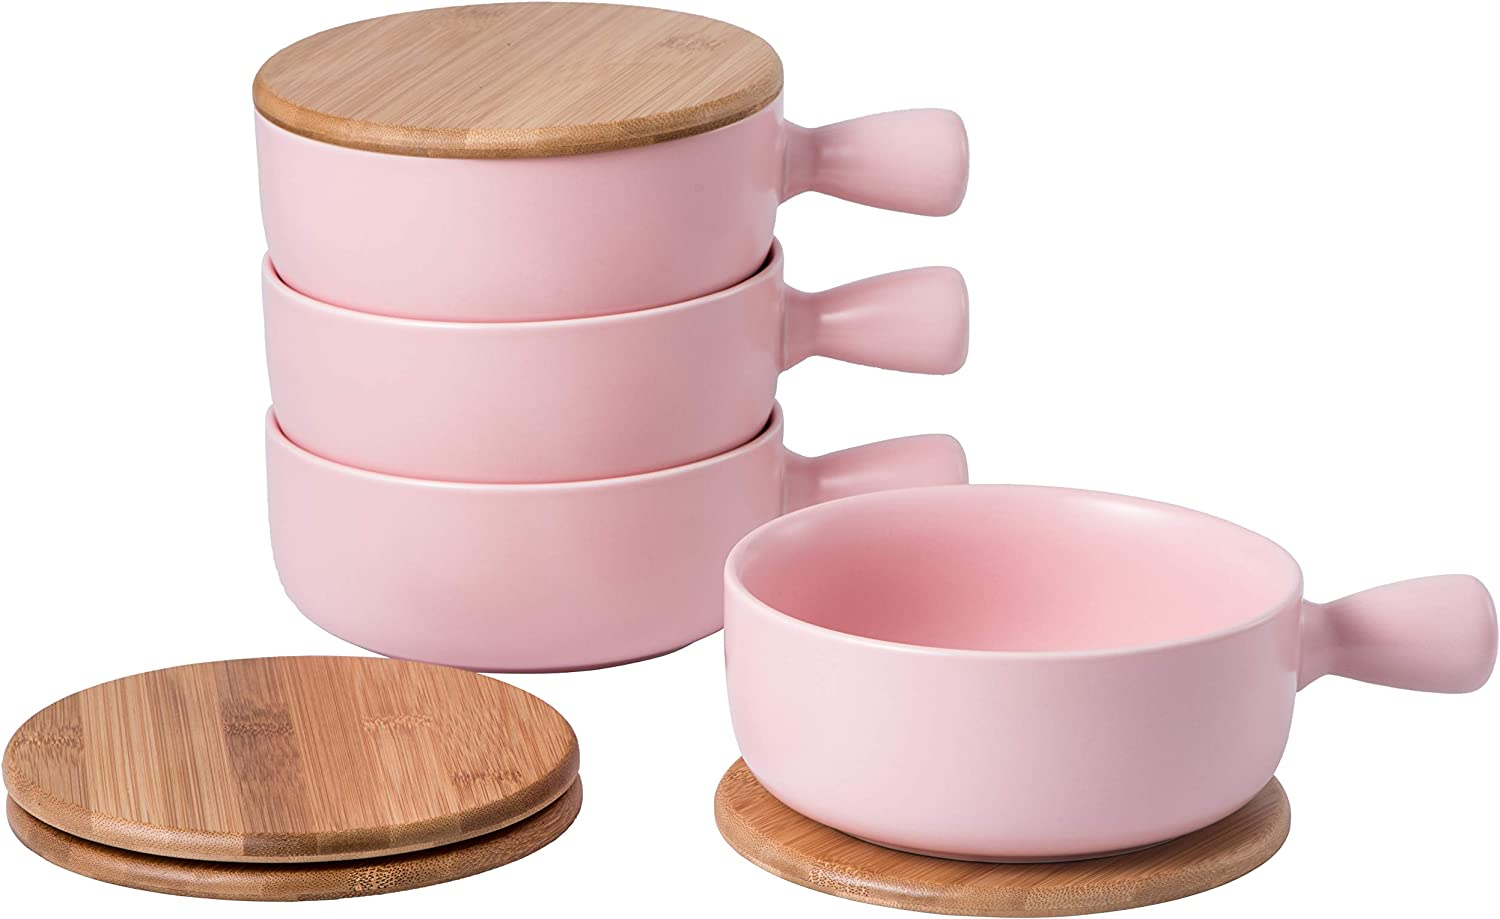 Set 4 of 22 Ounces (OZ) French onion with BAMBOO lids for soup crocks oven safe, Porcelain bowl for full capacity cereal, chili pot, stew cheese, Tortilla soup bowl and stew pot (pink)